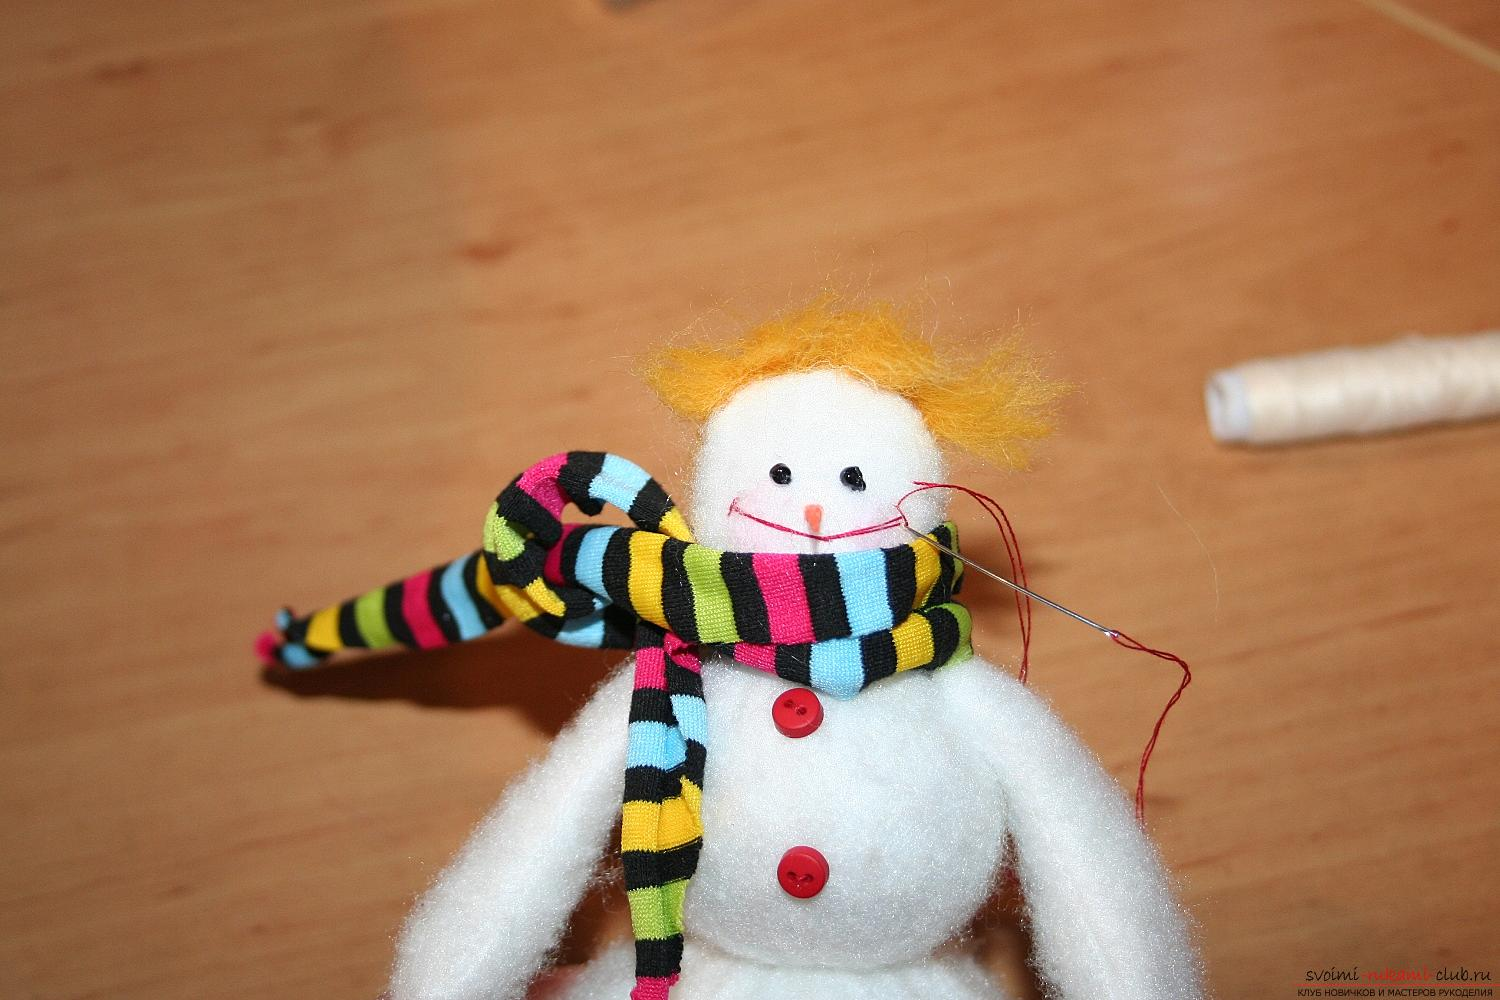 A detailed master class will show you how to make your own hands a New Year's hand-made snowman. Photo number 35